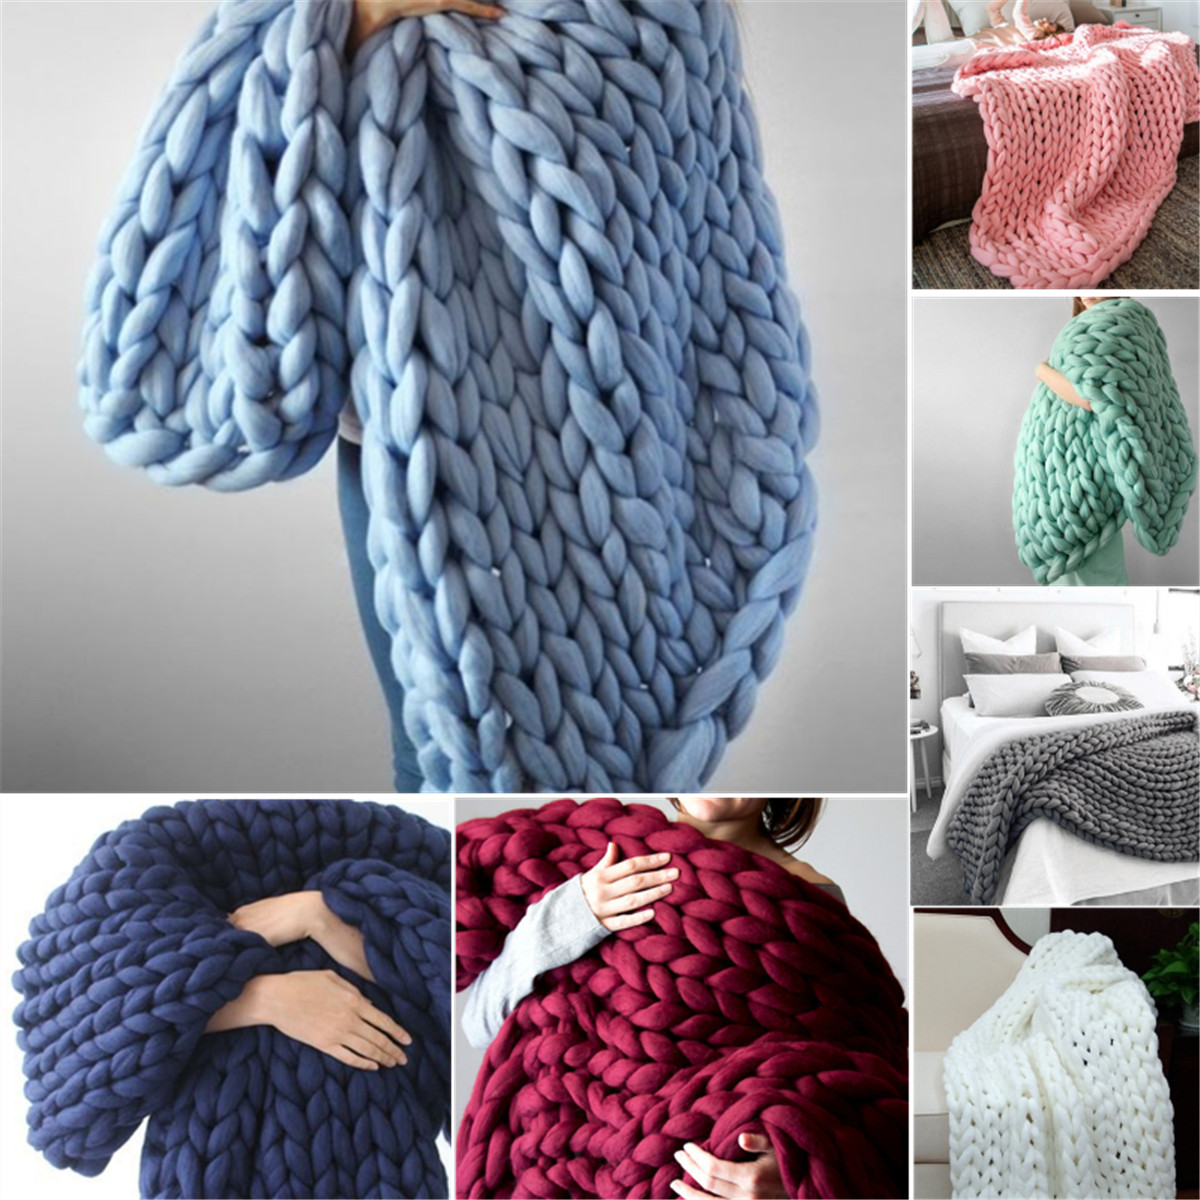 120x150cm Chunky Knitted Thick Blanket Hand Yarn Bulky Knit Throw Sofa Bed